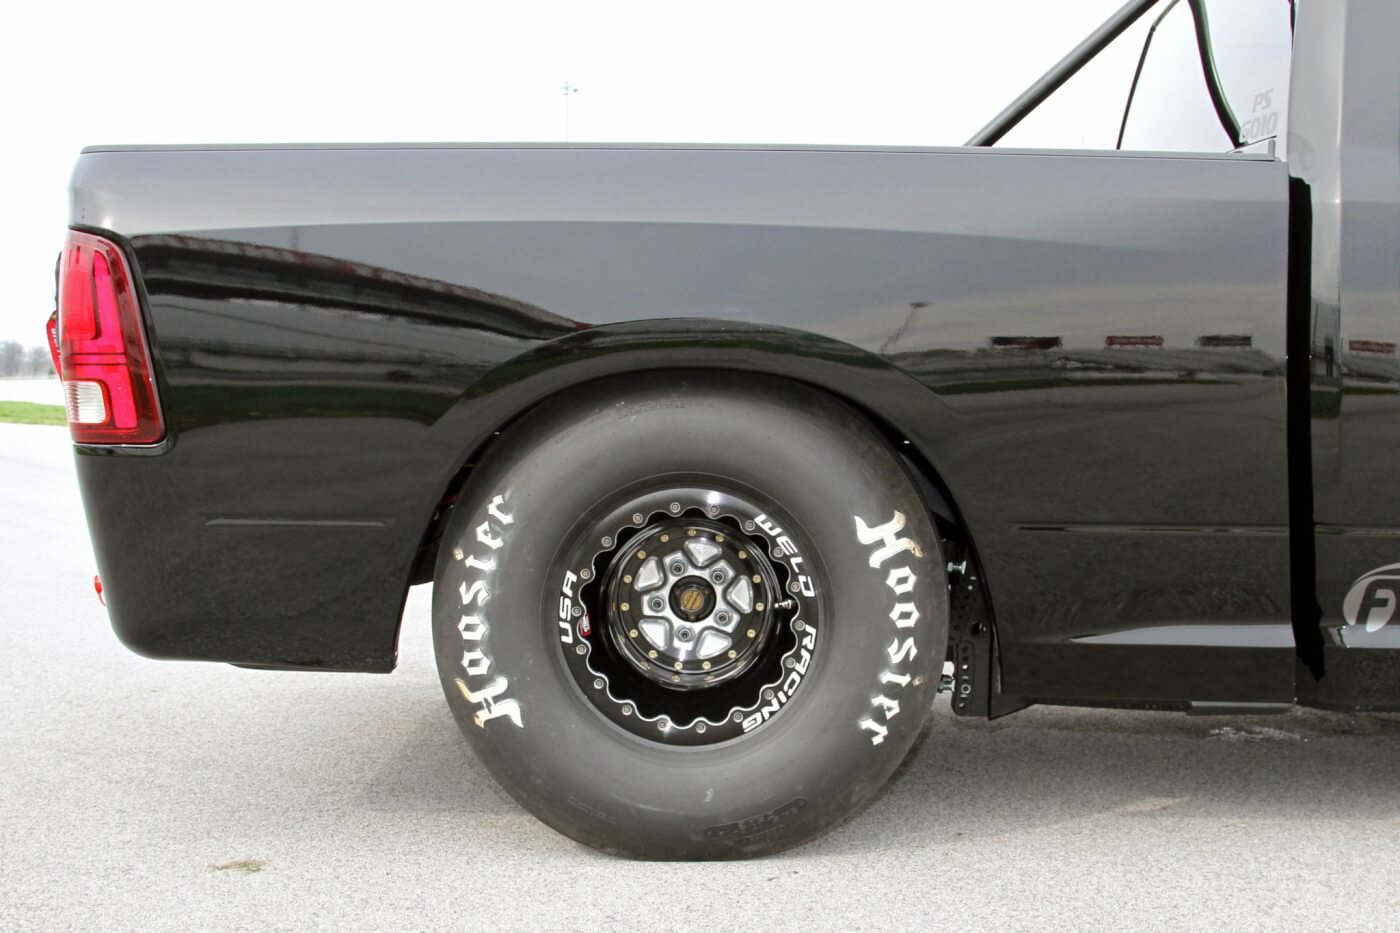 The massive Hoosier 34.5/17-16 slicks are wrapped around and bolted to a set of Weld Racing 16X16-inch AlumaStar PRO double beadlock wheels; hopefully they will give Milliken the traction he needs to put 1,500 horsepower to the ground.